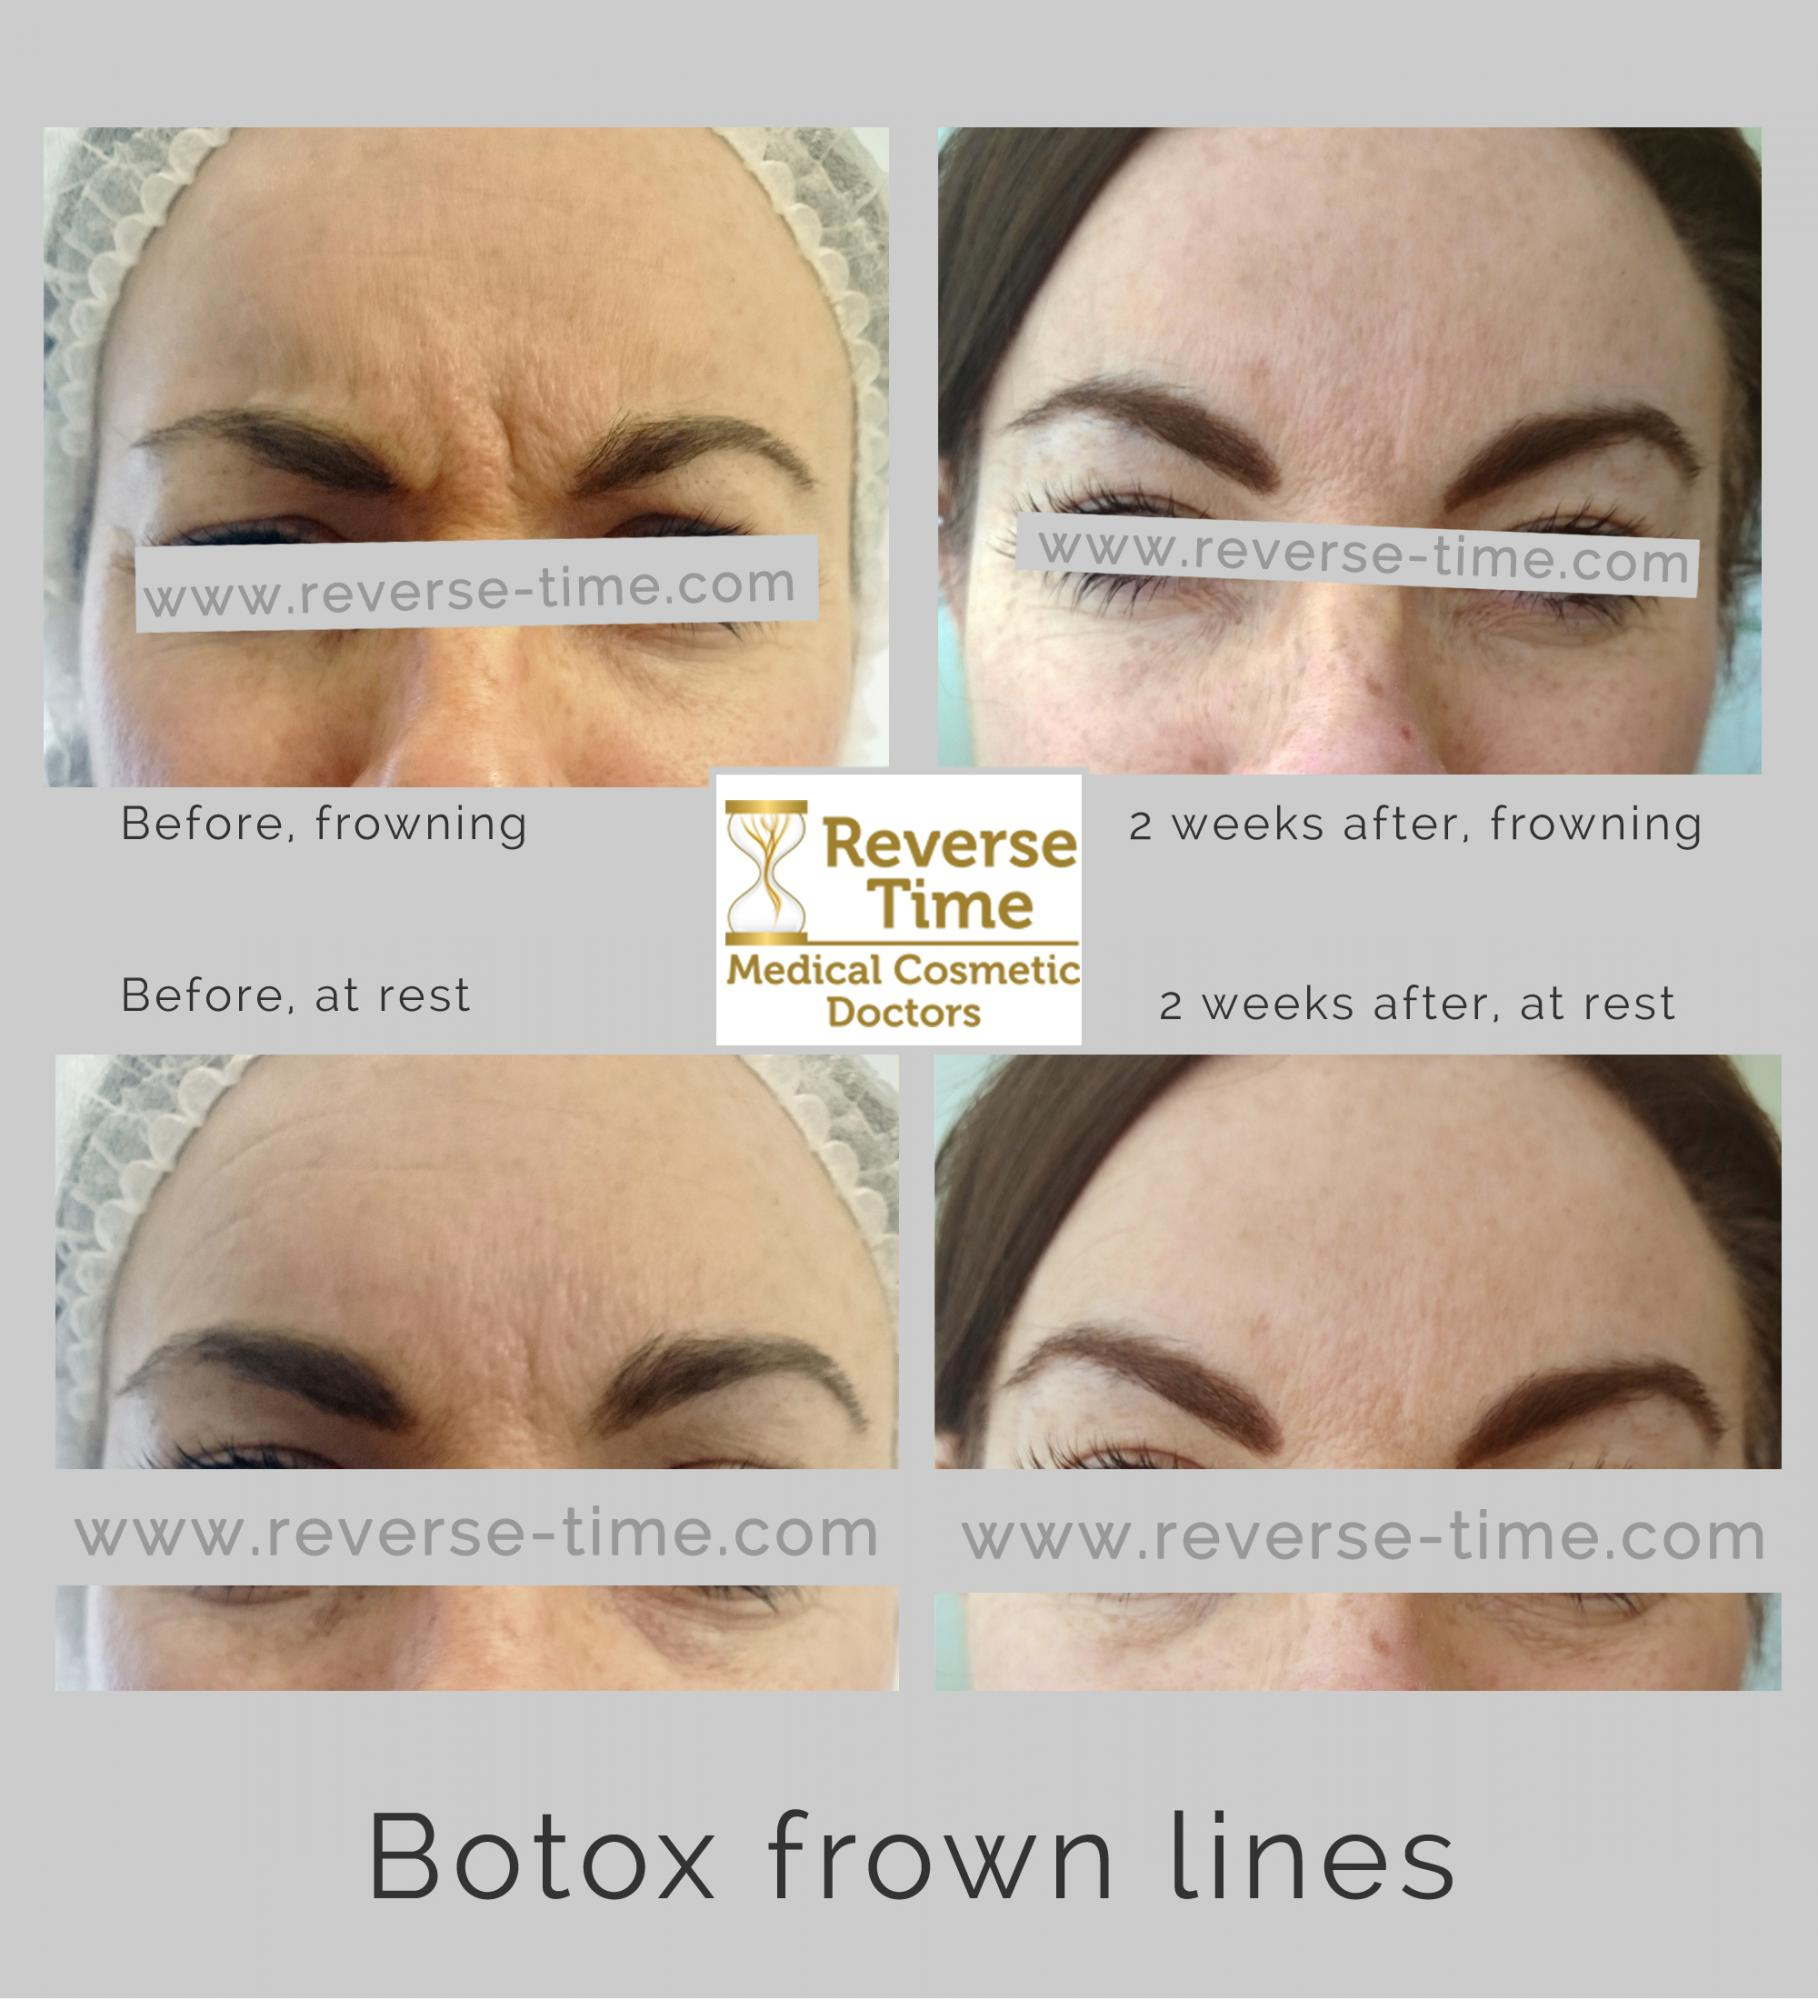 botox frown lines before after photos